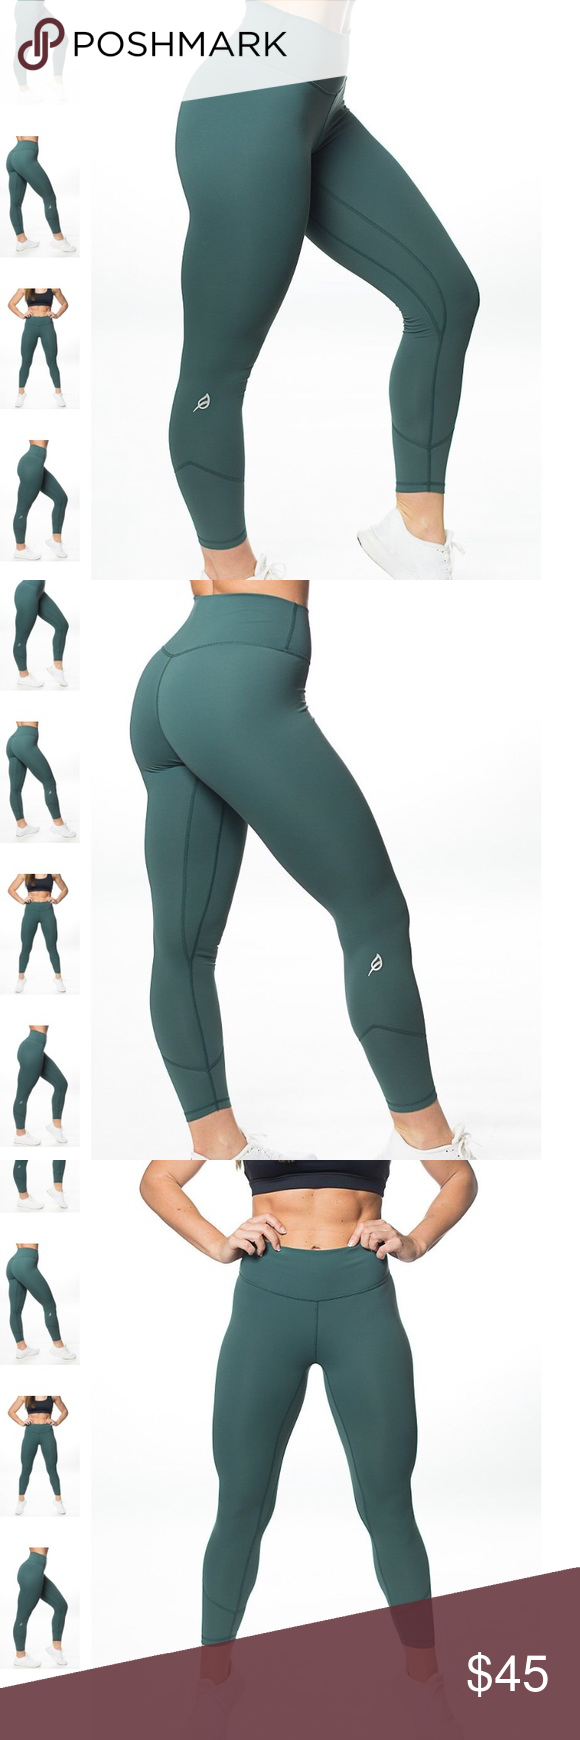 Sold Ptula Alainah Allure Leggings In Forrest Leggings Are Not Pants Beautiful Leggings Leggings She starred in british concert halls and on bbc radio singing for the troops during wwii. pinterest